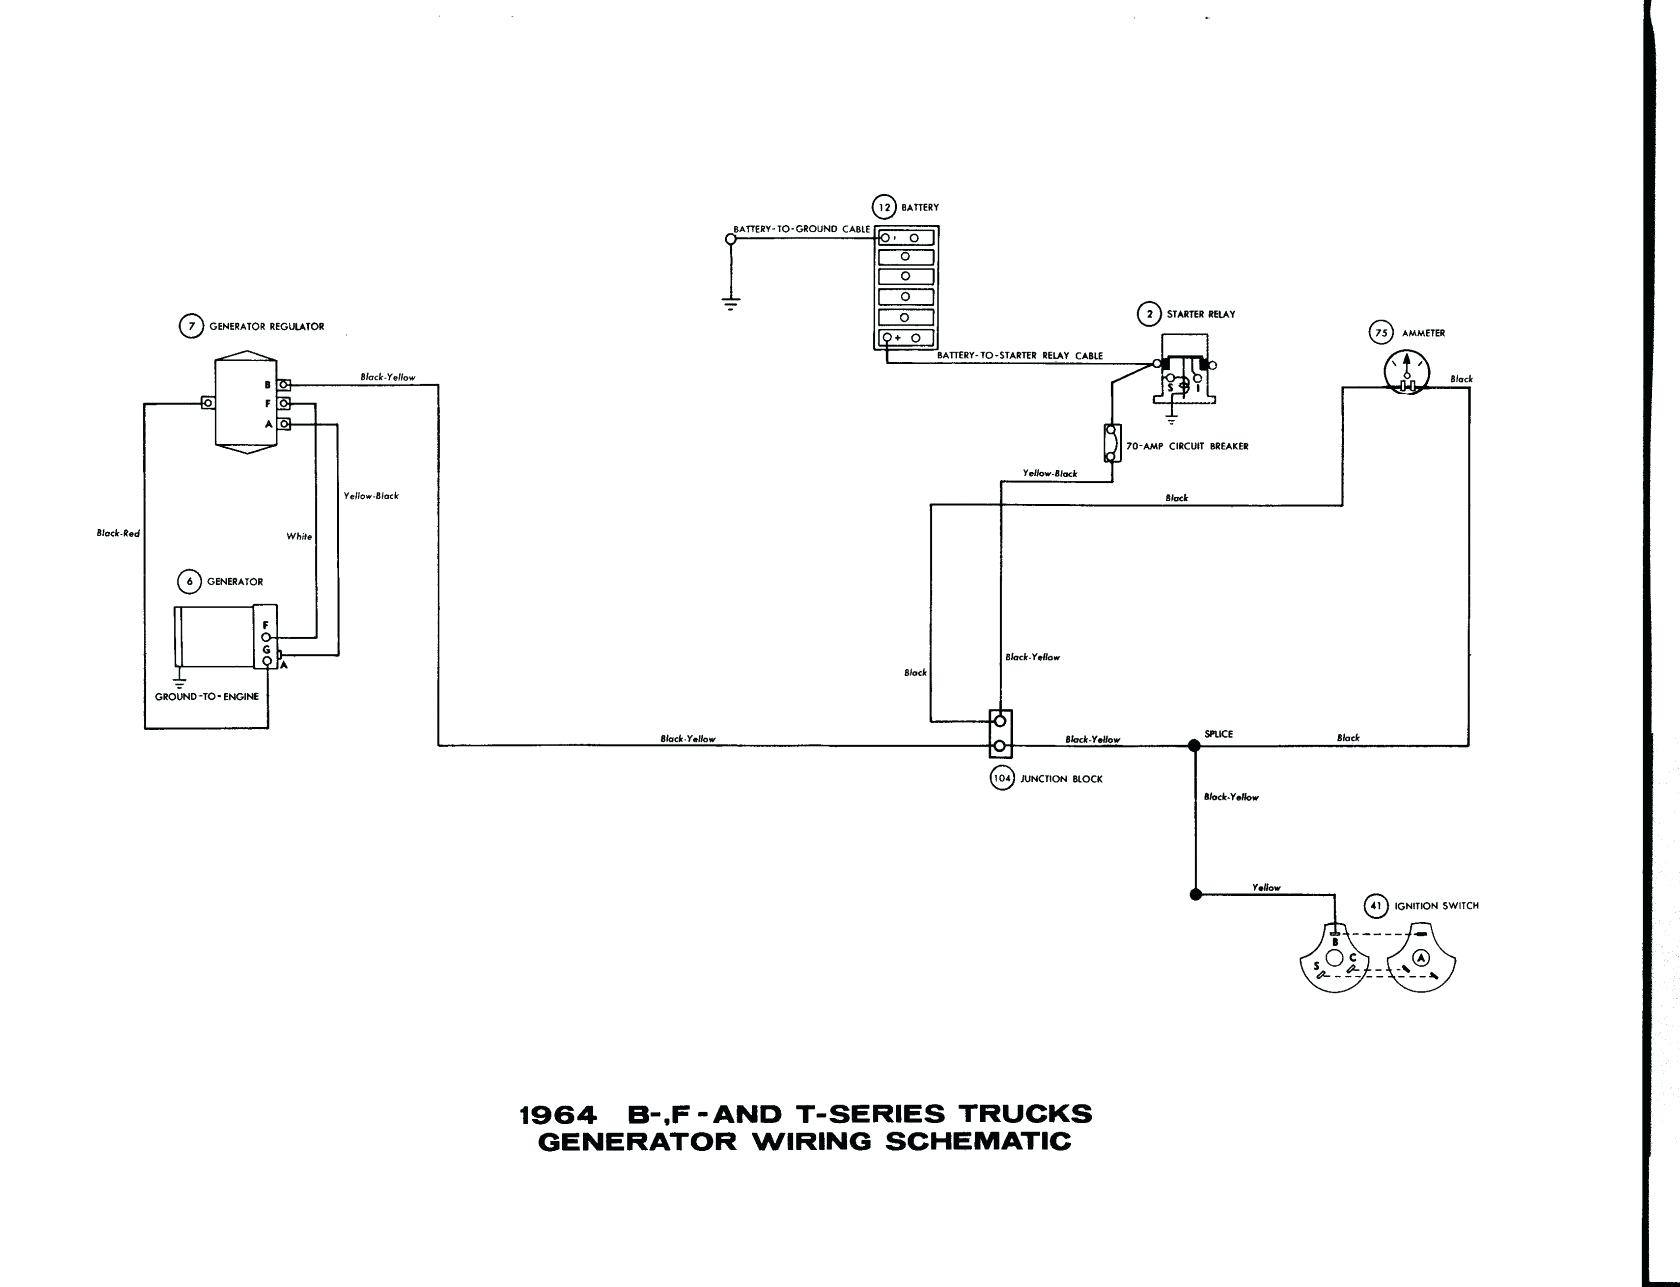 Delco Remy Cs130 Alternator Wiring Diagram Upgrades And Gm Lively 20 - Gm 4 Wire Alternator Wiring Diagram